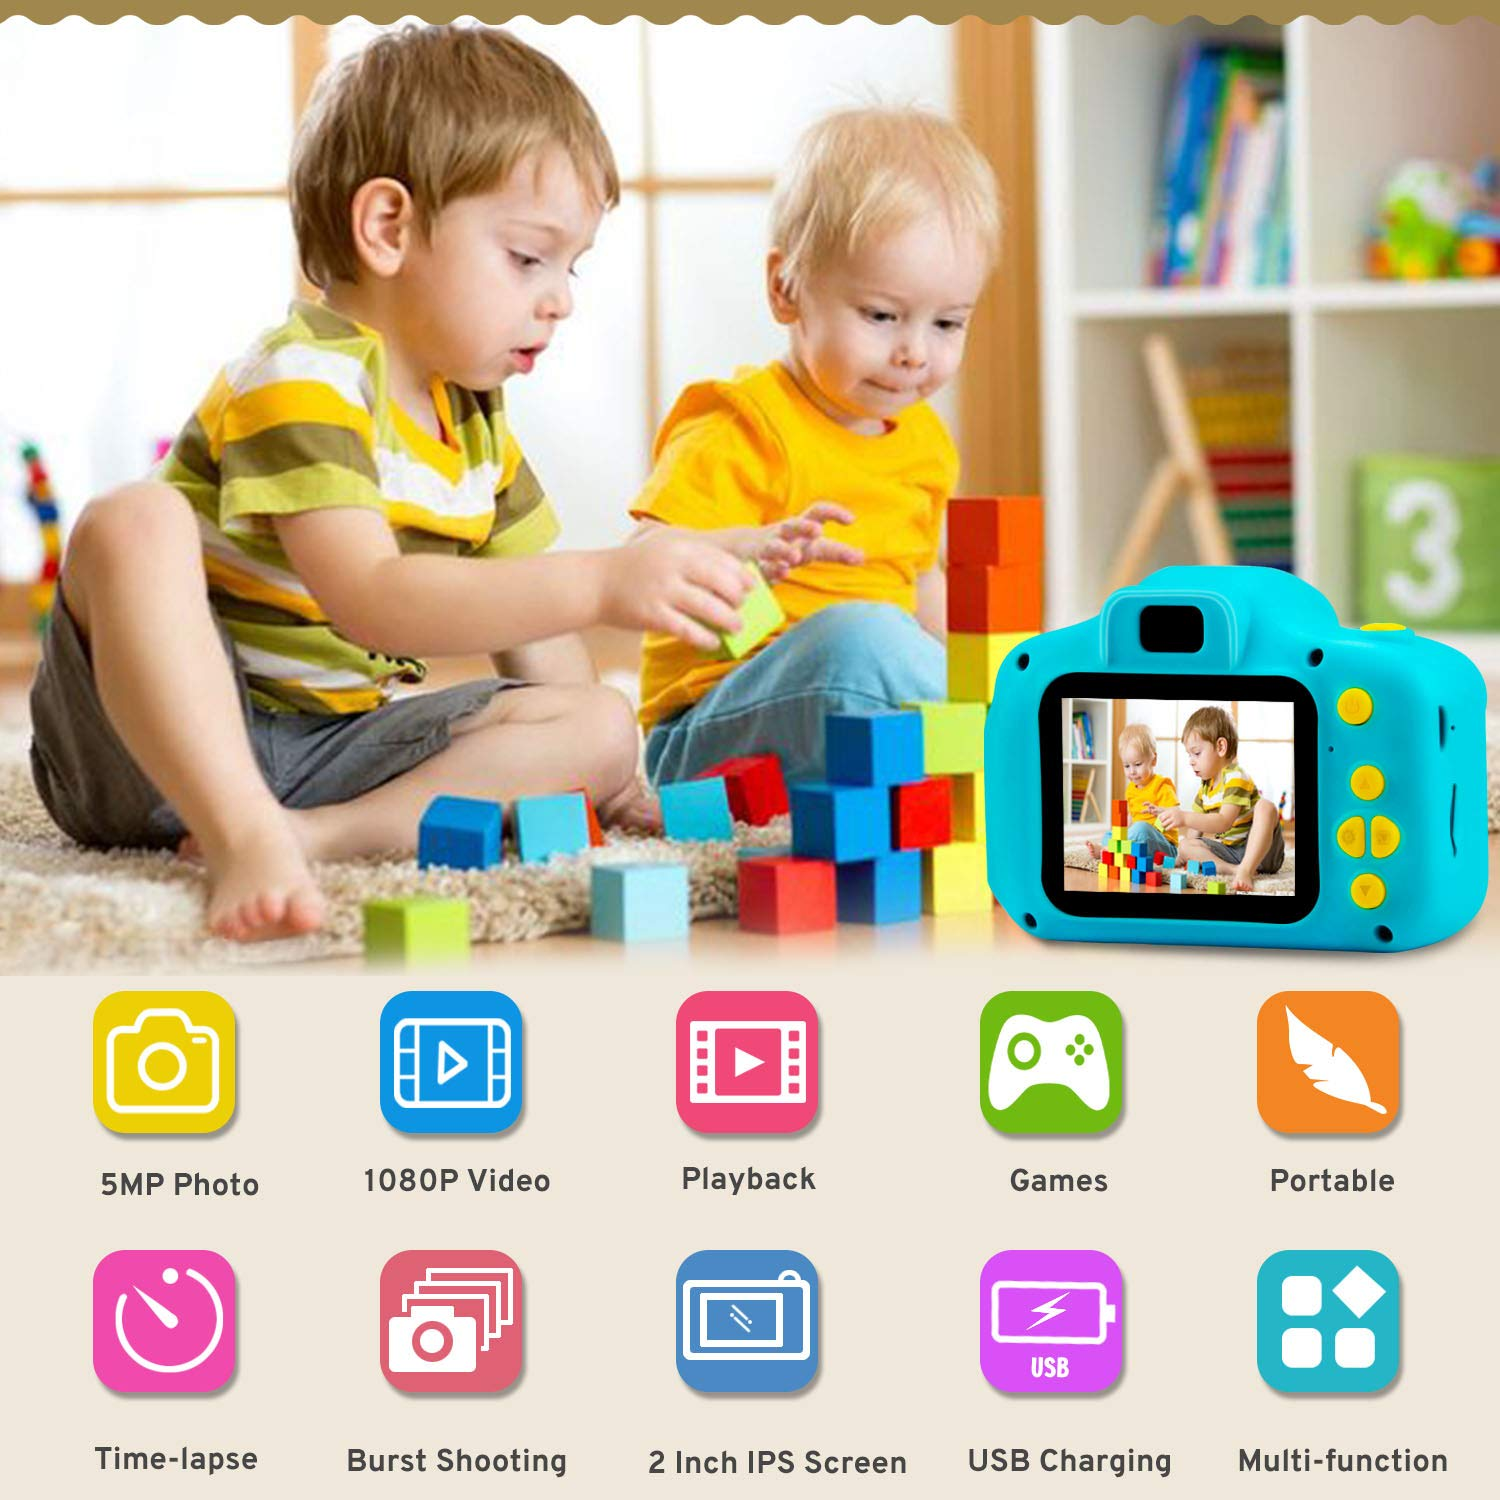 Prograce Kids Camera Children Digital Cameras for Boys Girls Birthday Toy Gifts 4-12 Year Old Kid Action Camera Toddler Video Recorder 1080P IPS 2 Inch